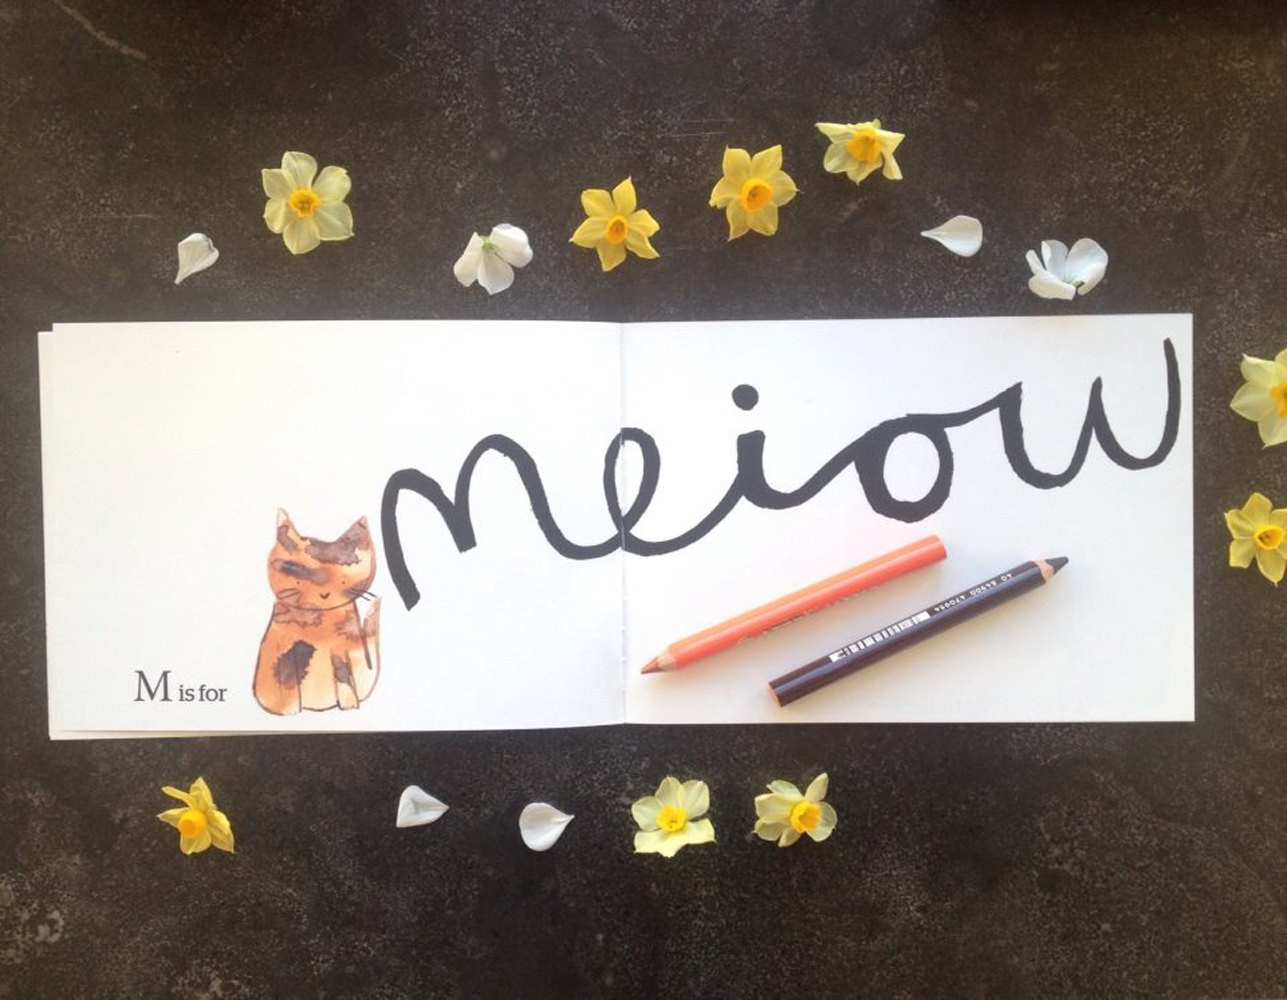 M is for Meiow